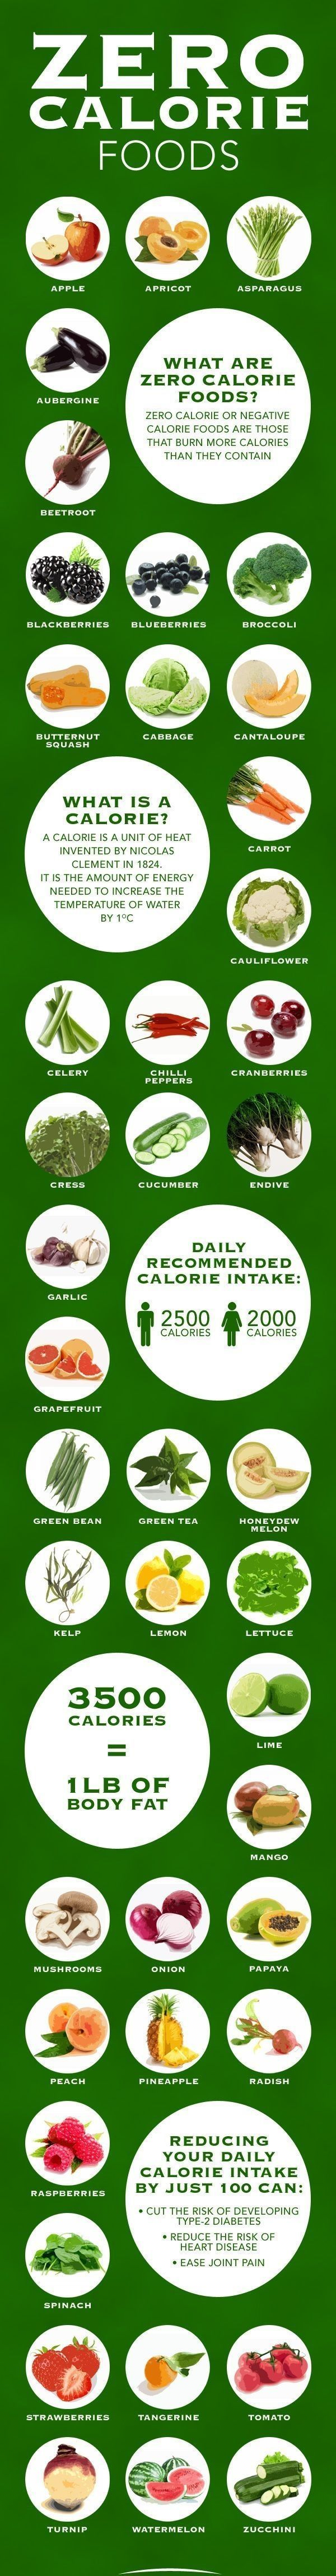 Zero Calories Foods Did you know that zero calorie or negative food are those that burn more calories than they contain